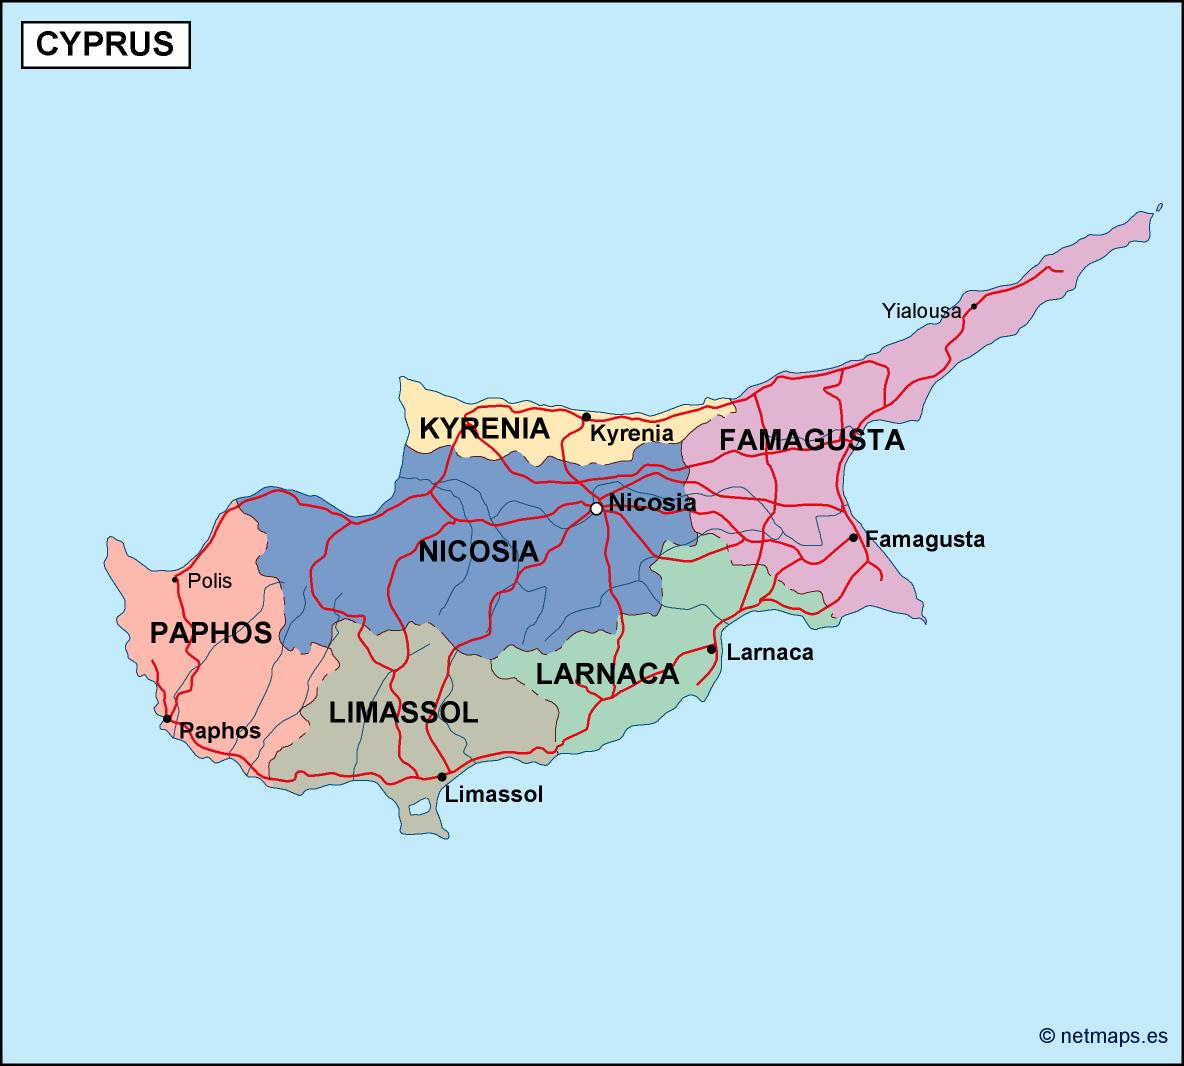 cyprus political map Illustrator Vector Eps maps Order and